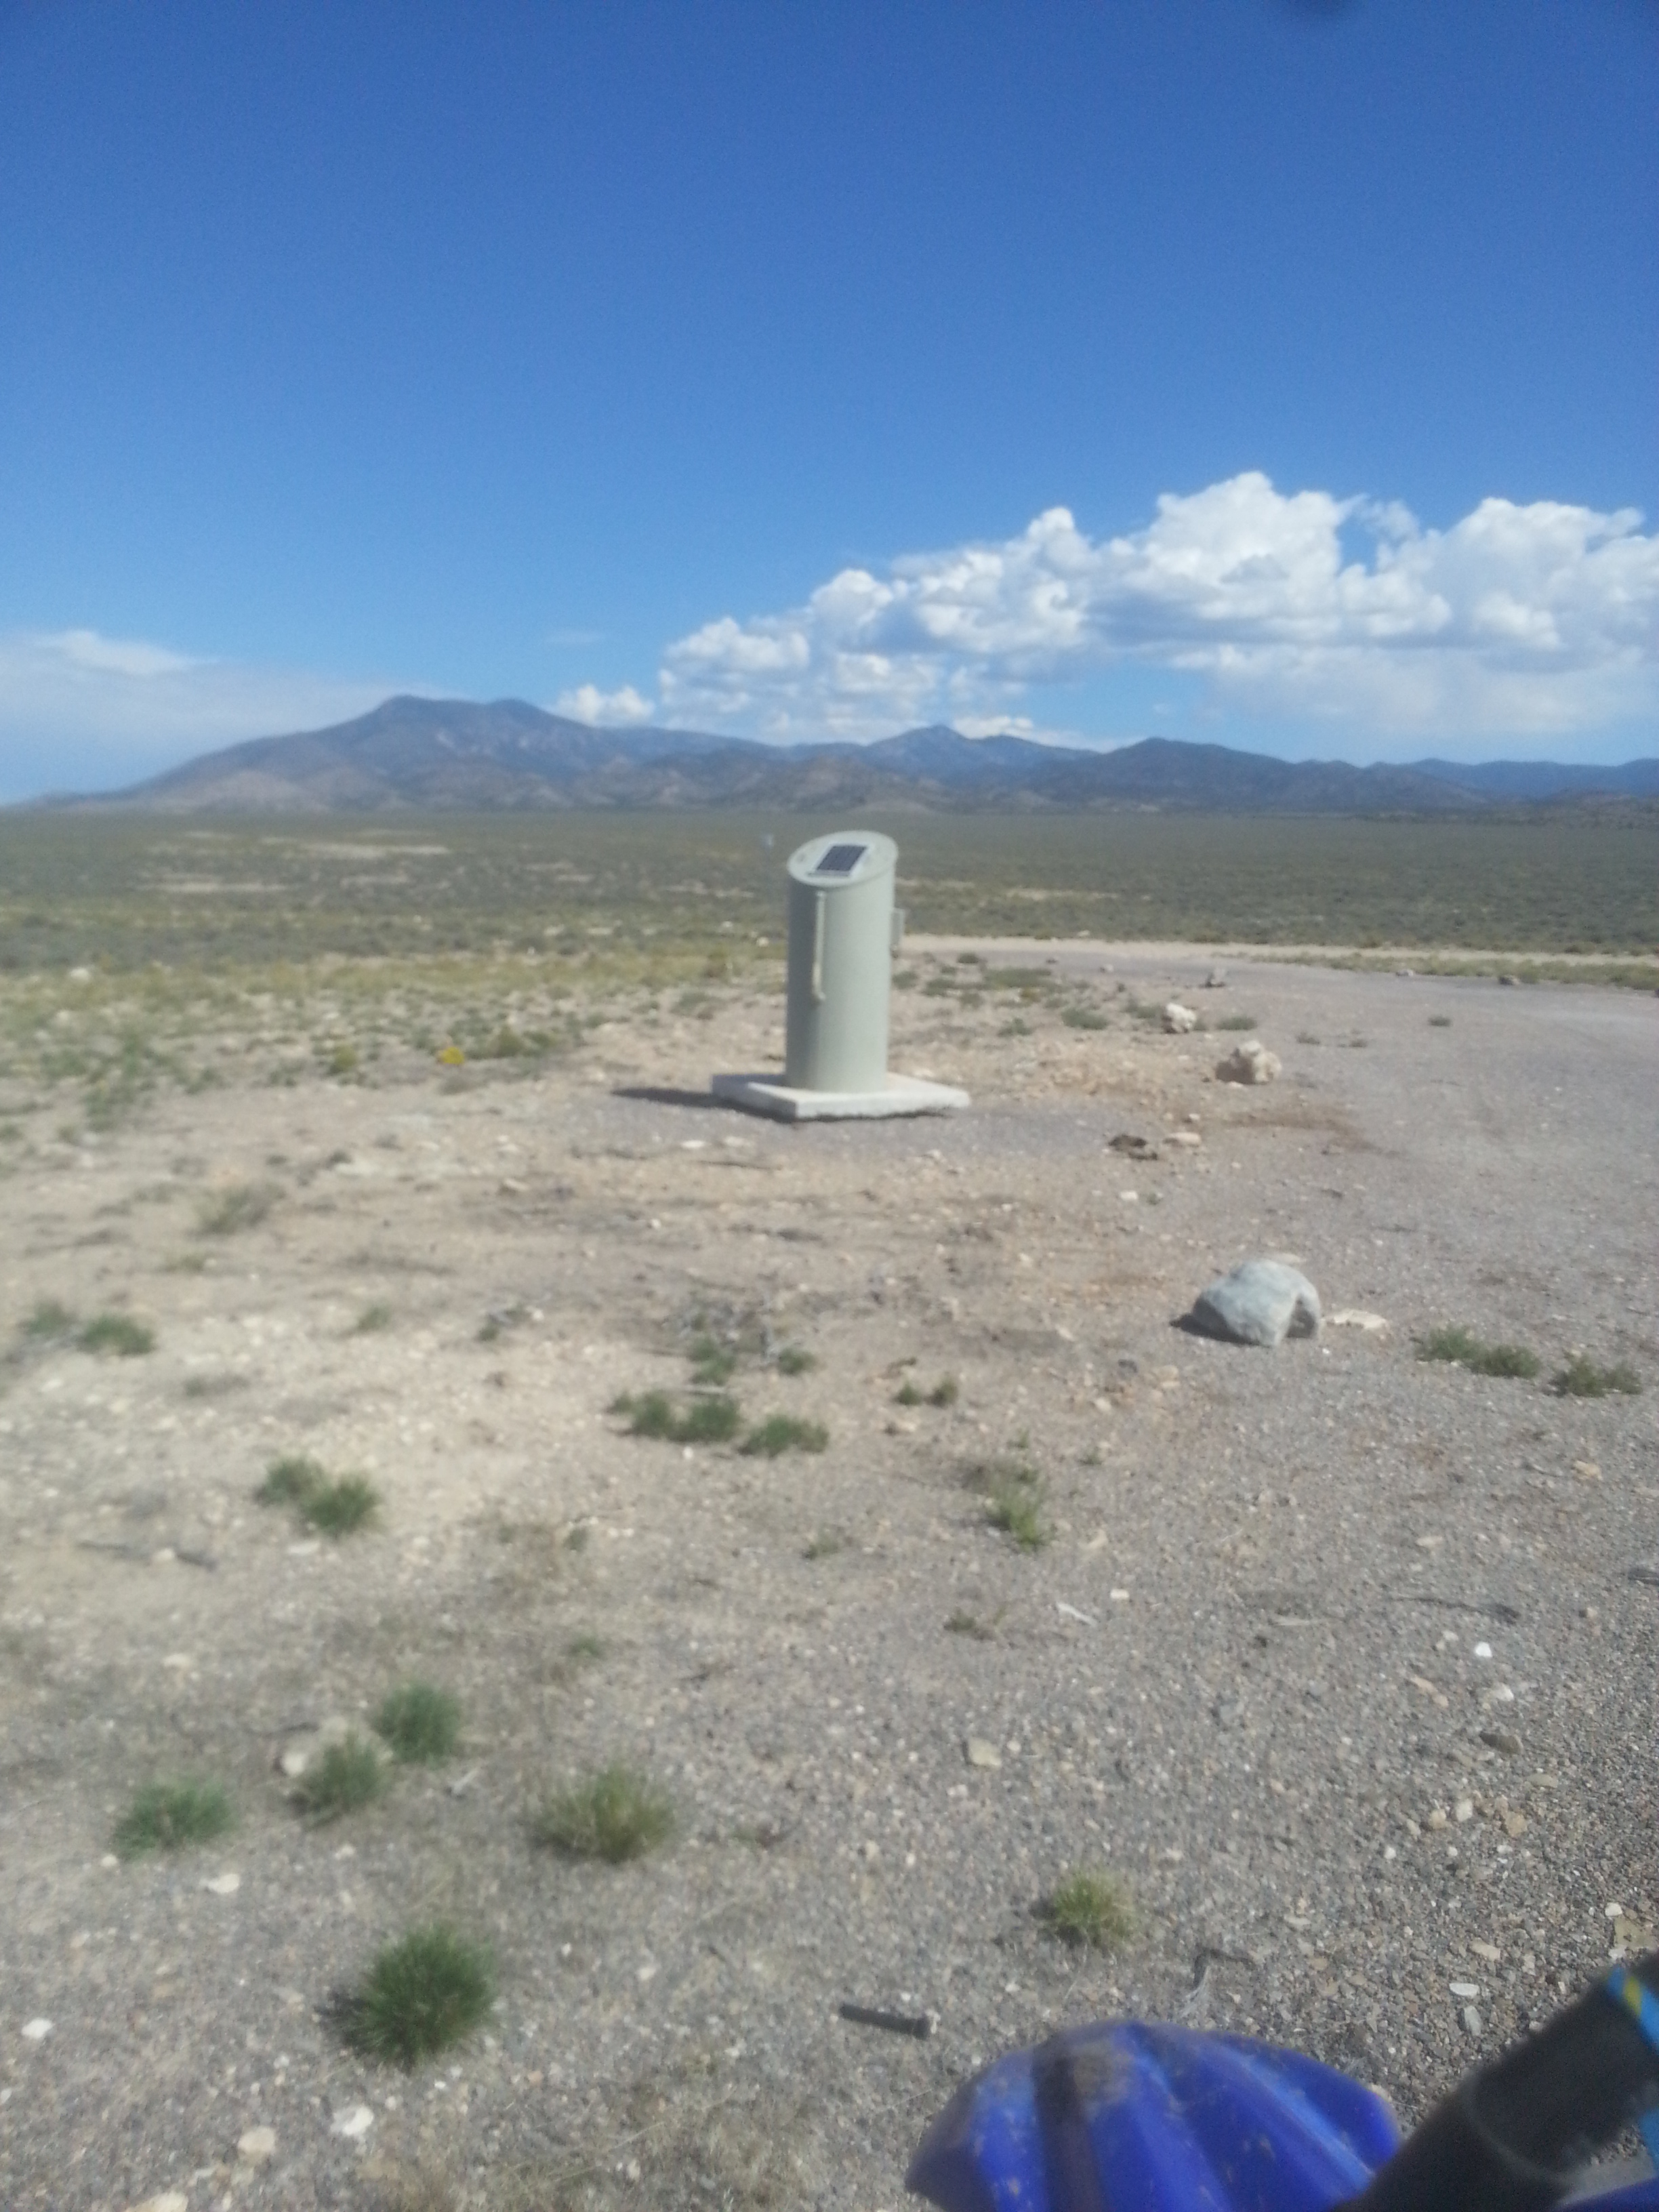 weird metal thing with a solar panel on top in the middle of nowhere, I saw a couple of these, with a sign nearby that said something about a restoration area.  Maybe a monitoring well or something?